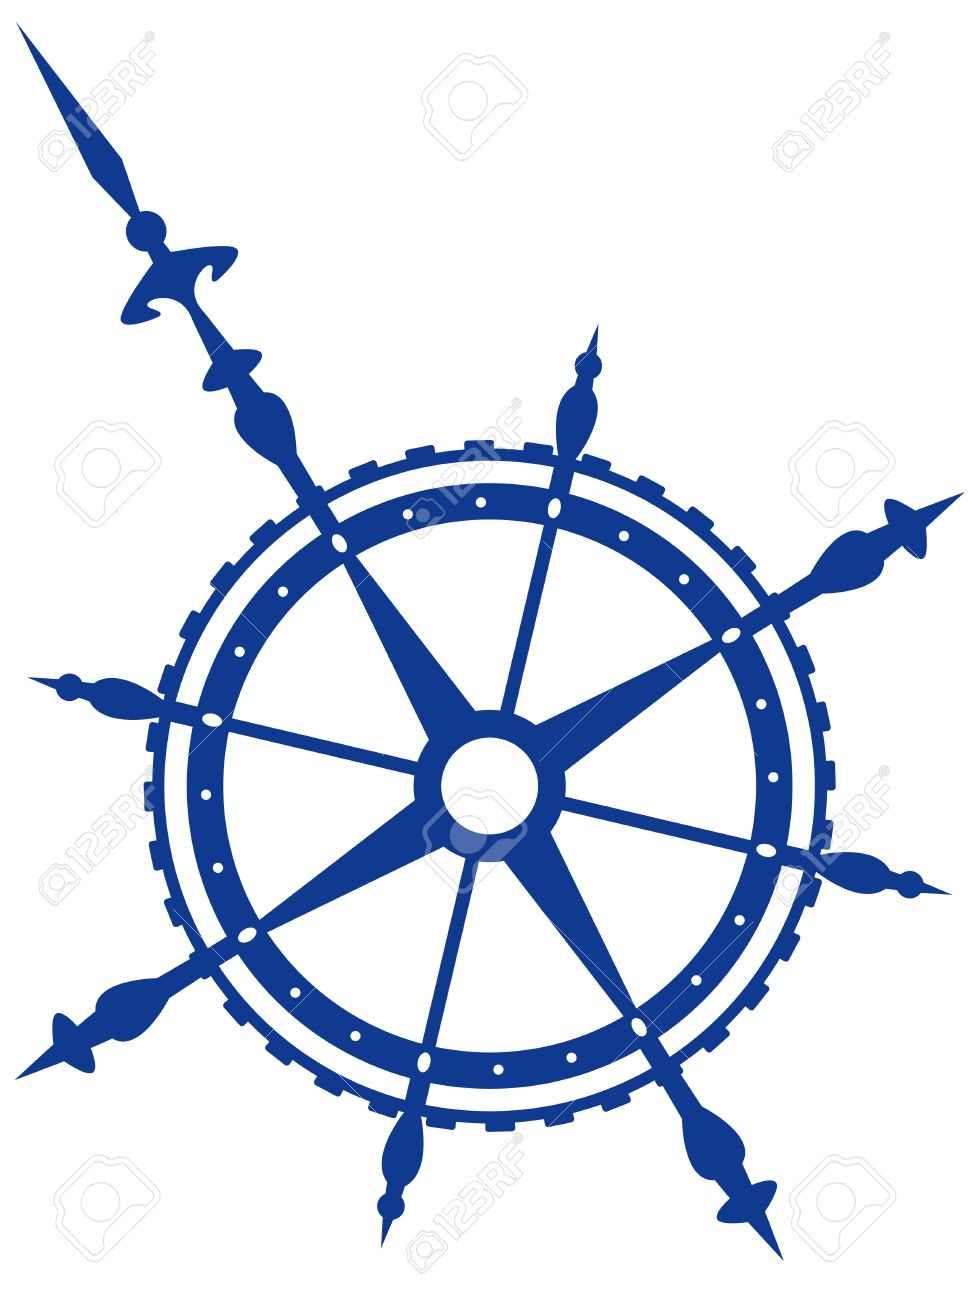 975x1300 Compass Clipart, Suggestions For Compass Clipart, Download Compass